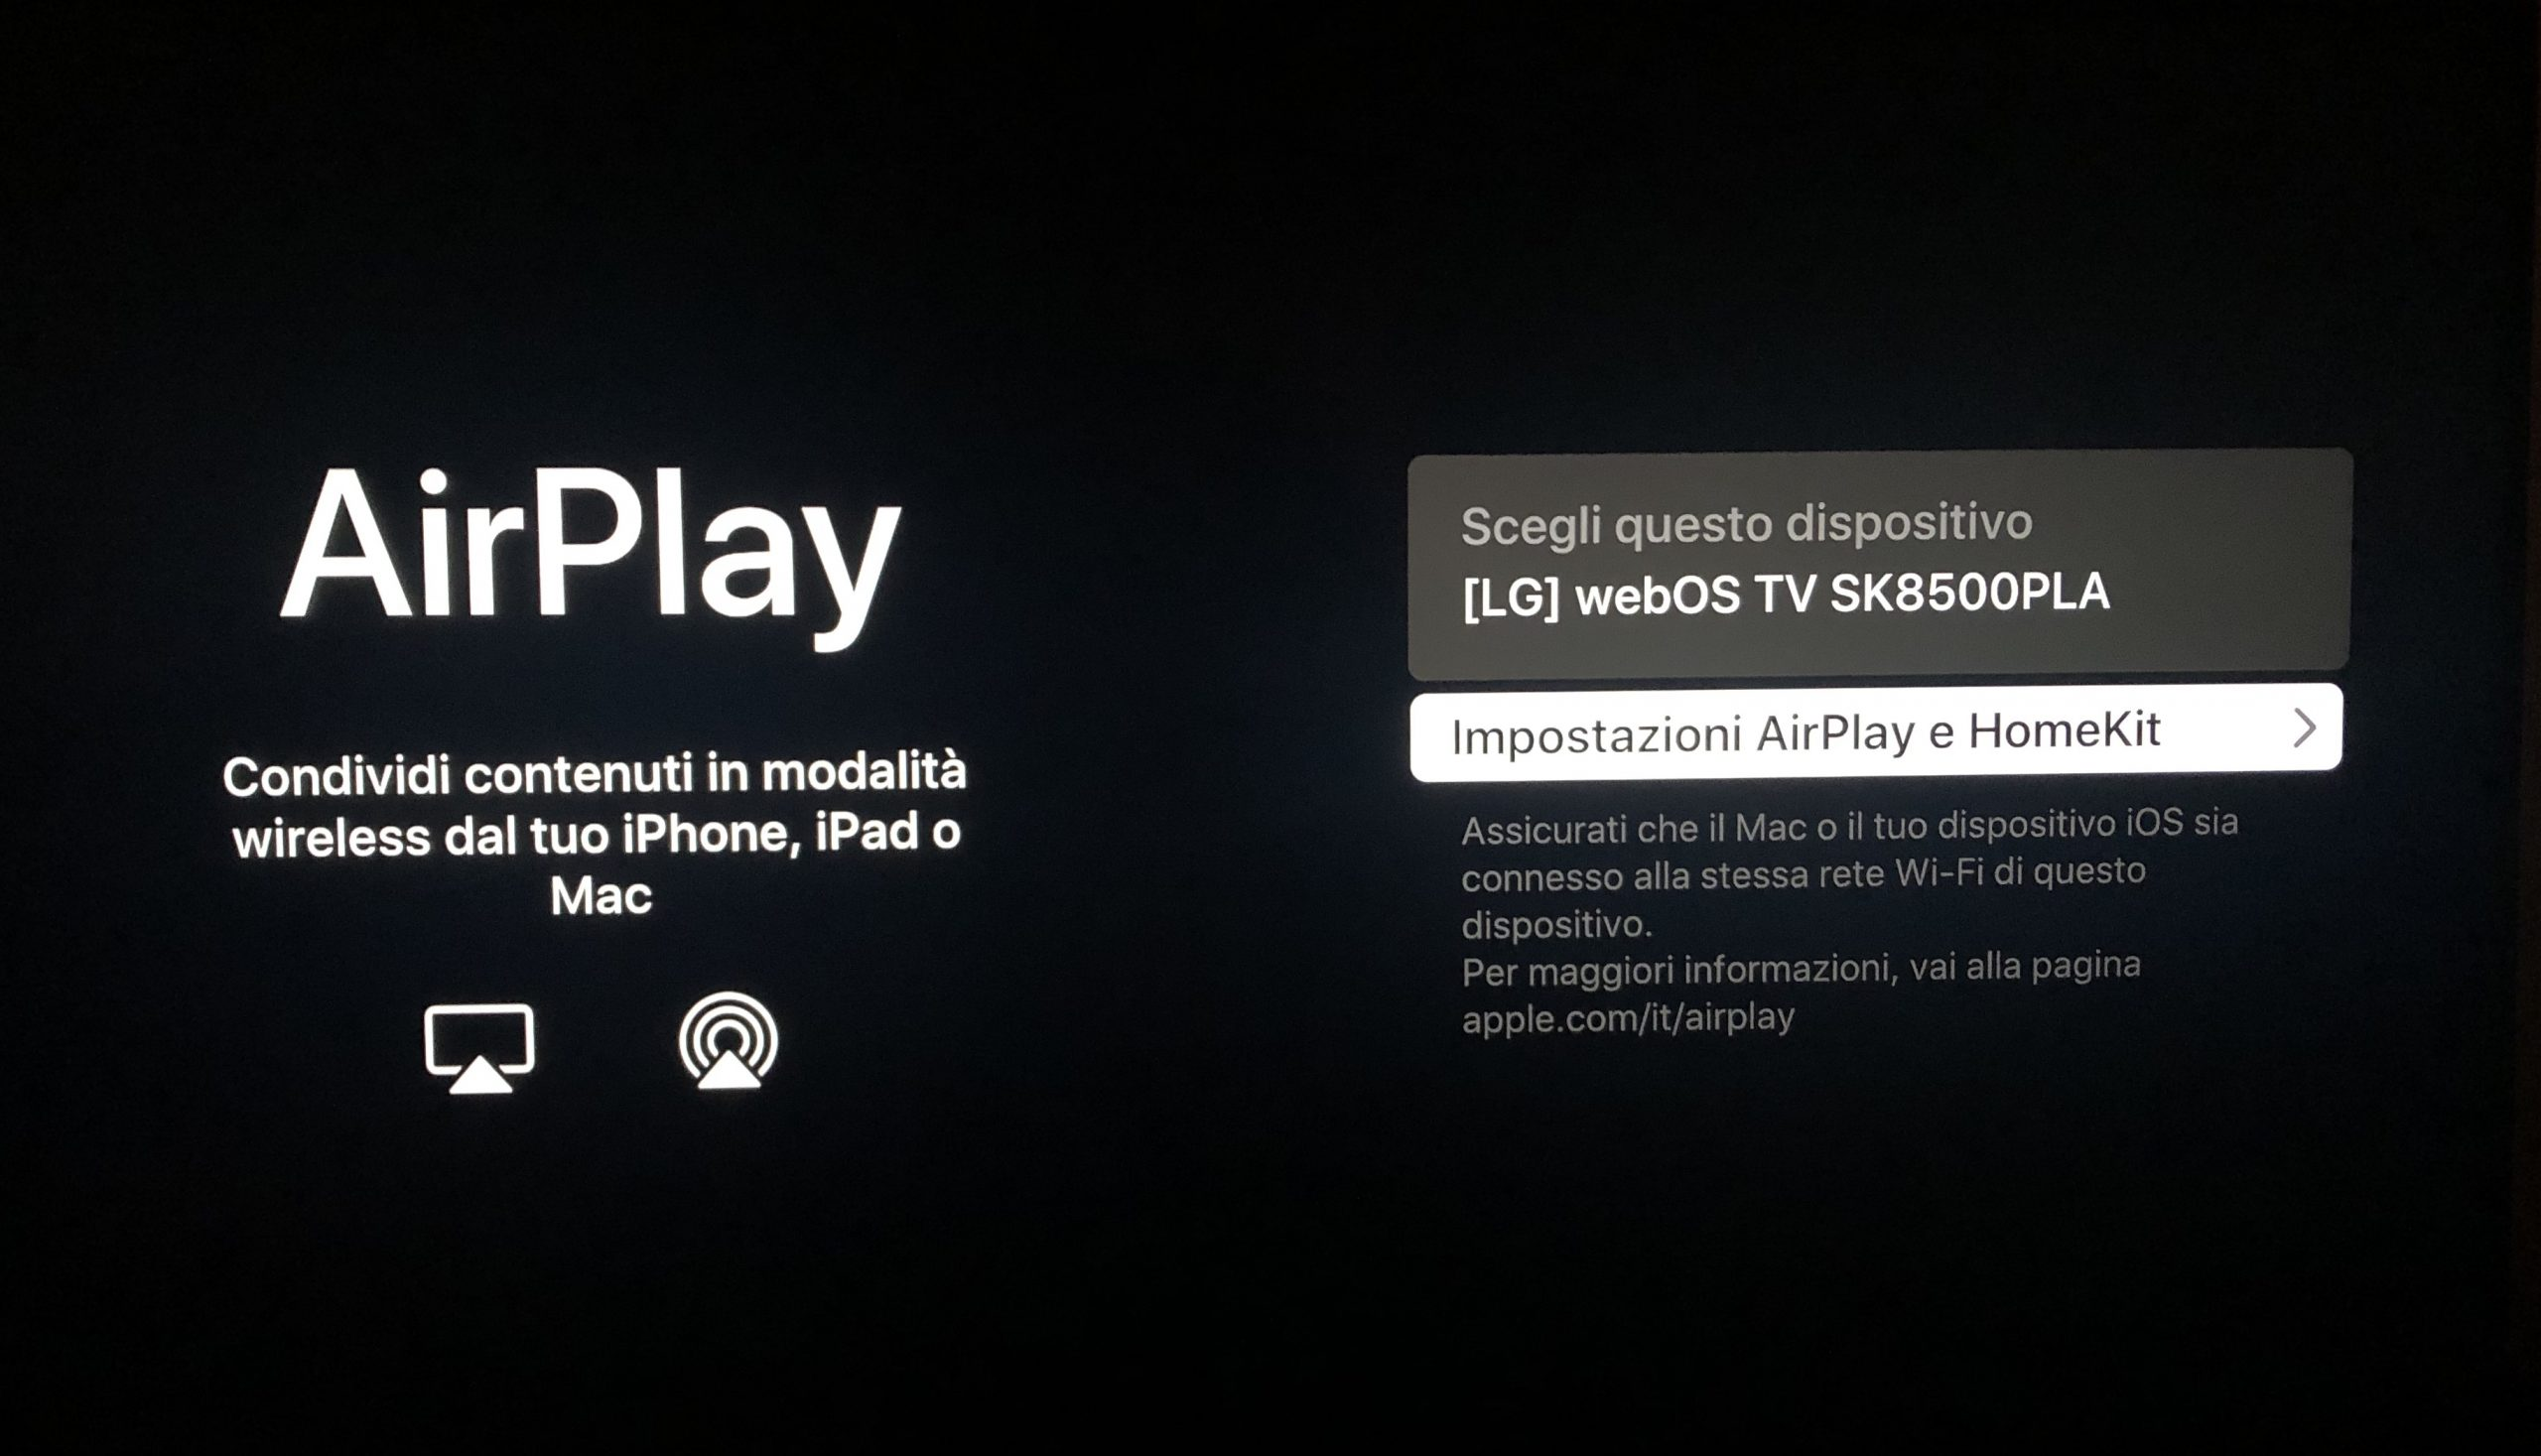 AirPlay on LG 55SK8500